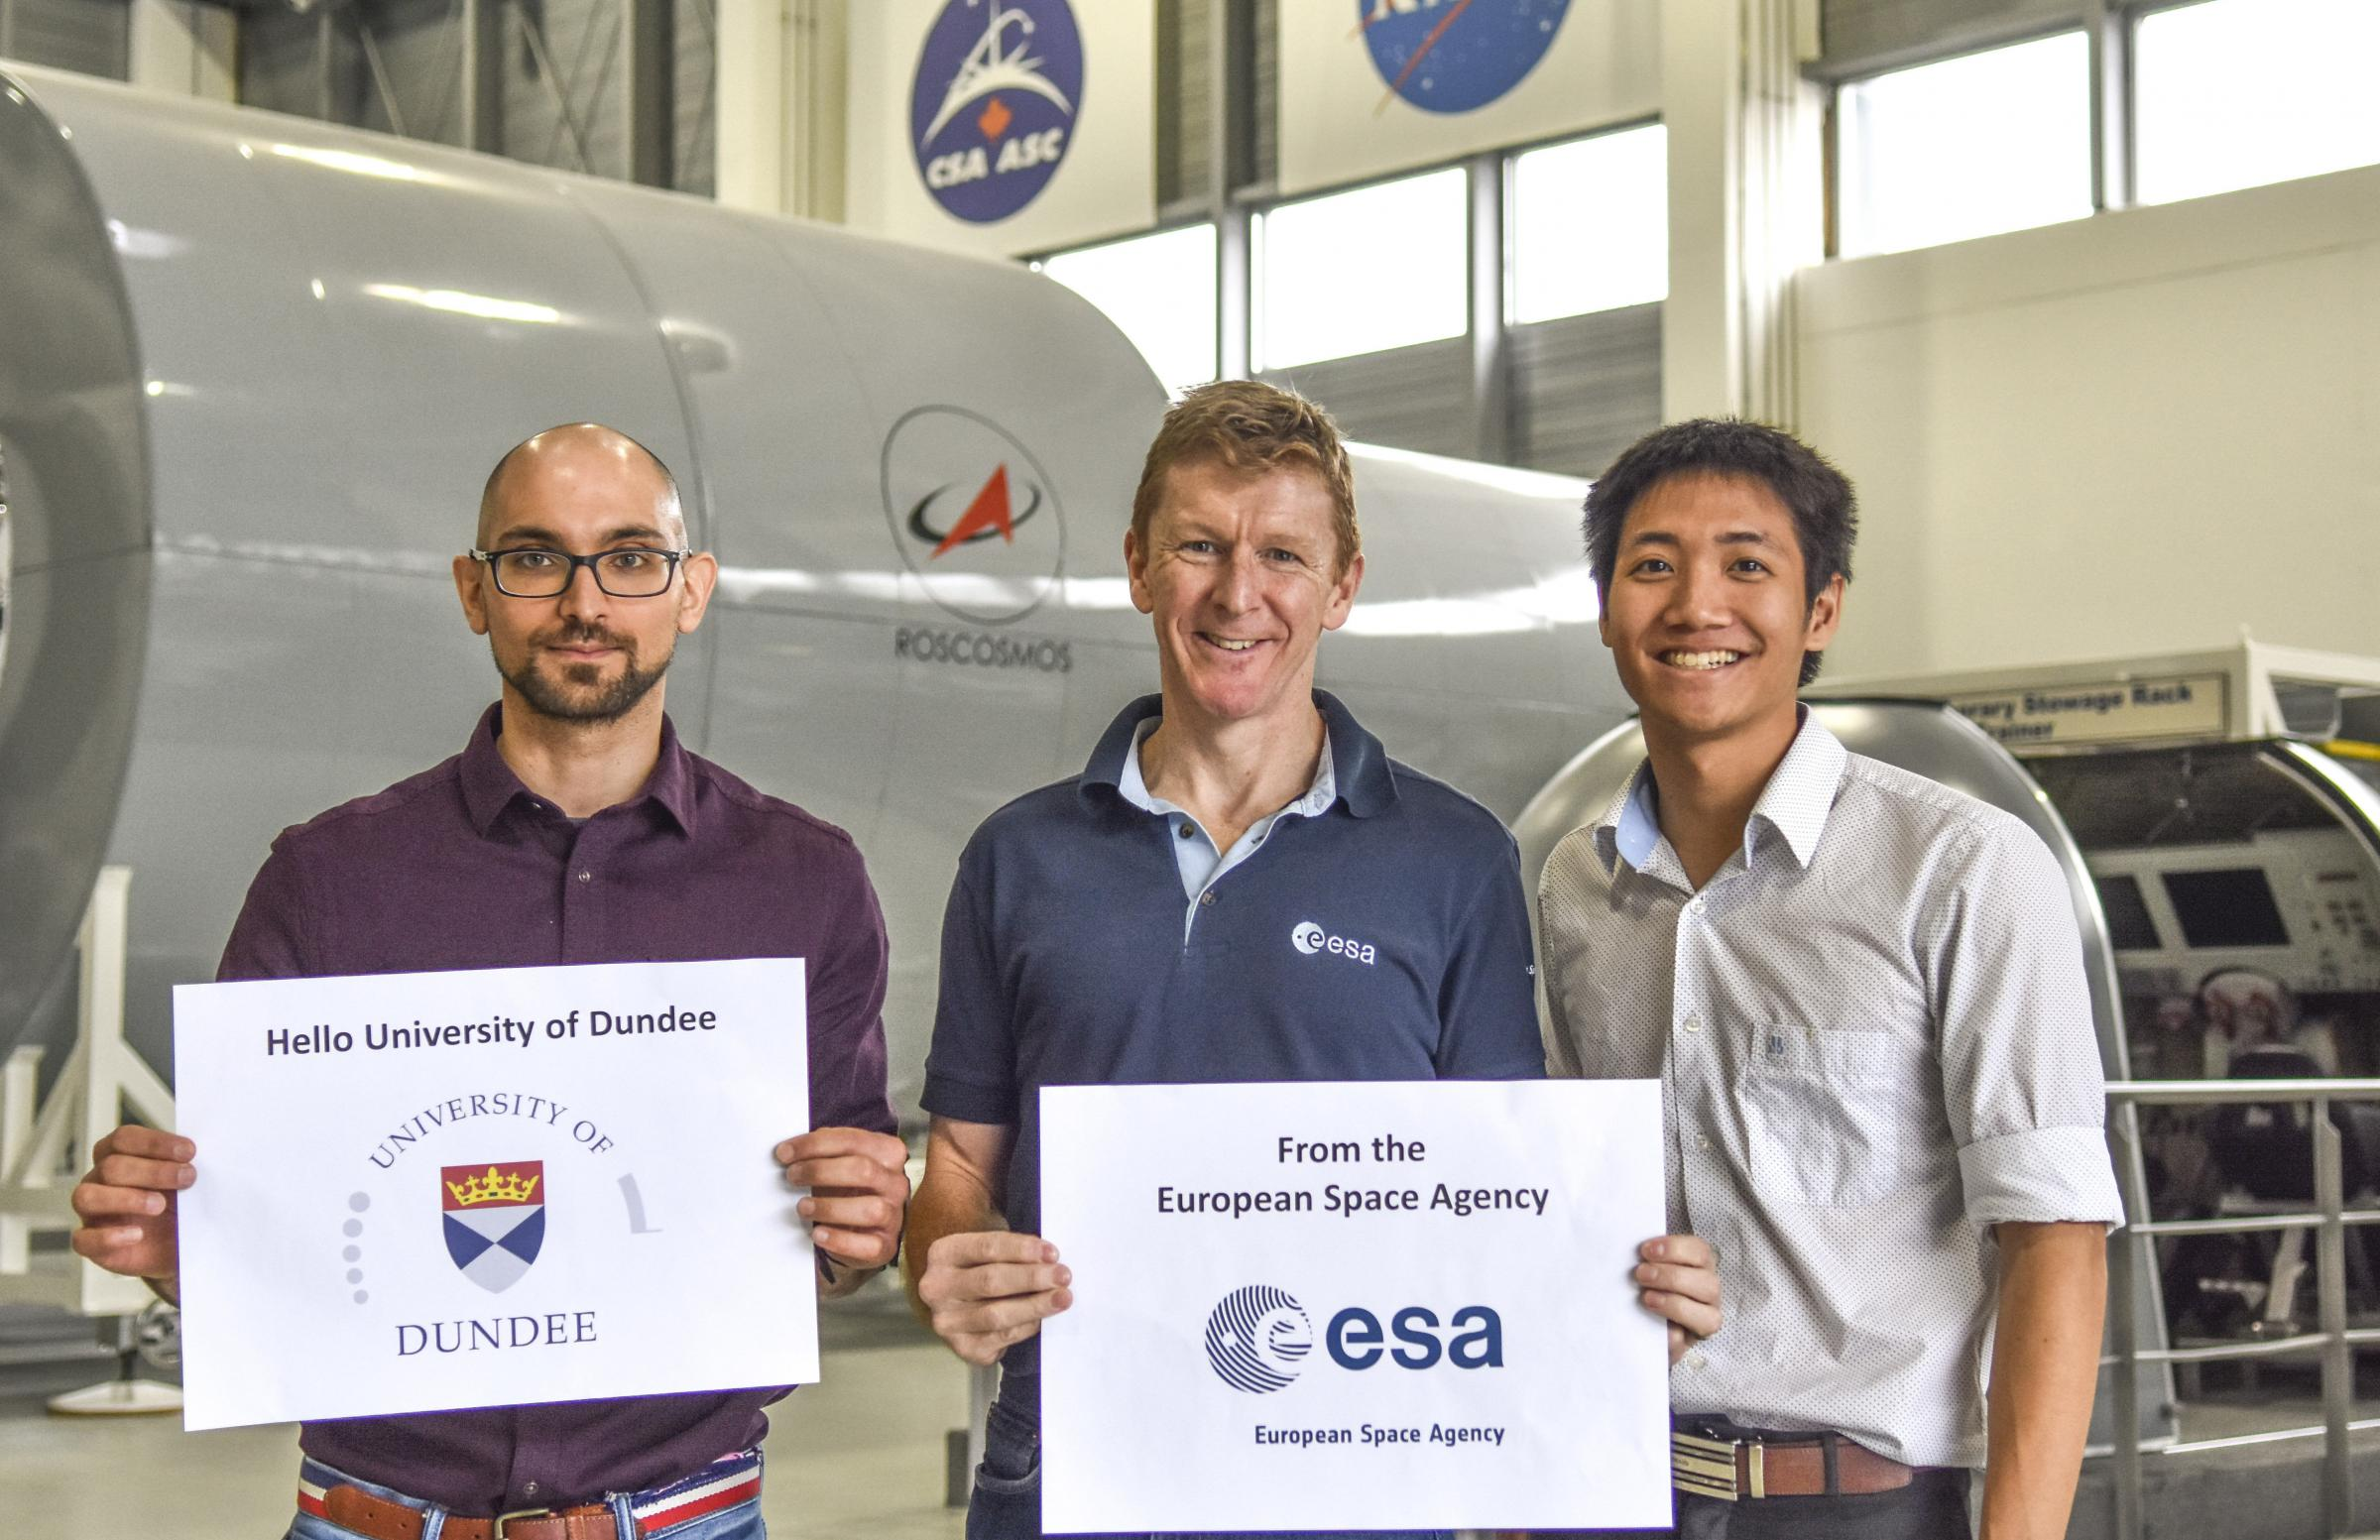 Amir Fathi and Neil Tan had one-to-one meetings with experts such as British astronaut Tim Peake during their internships with the European Space Agency